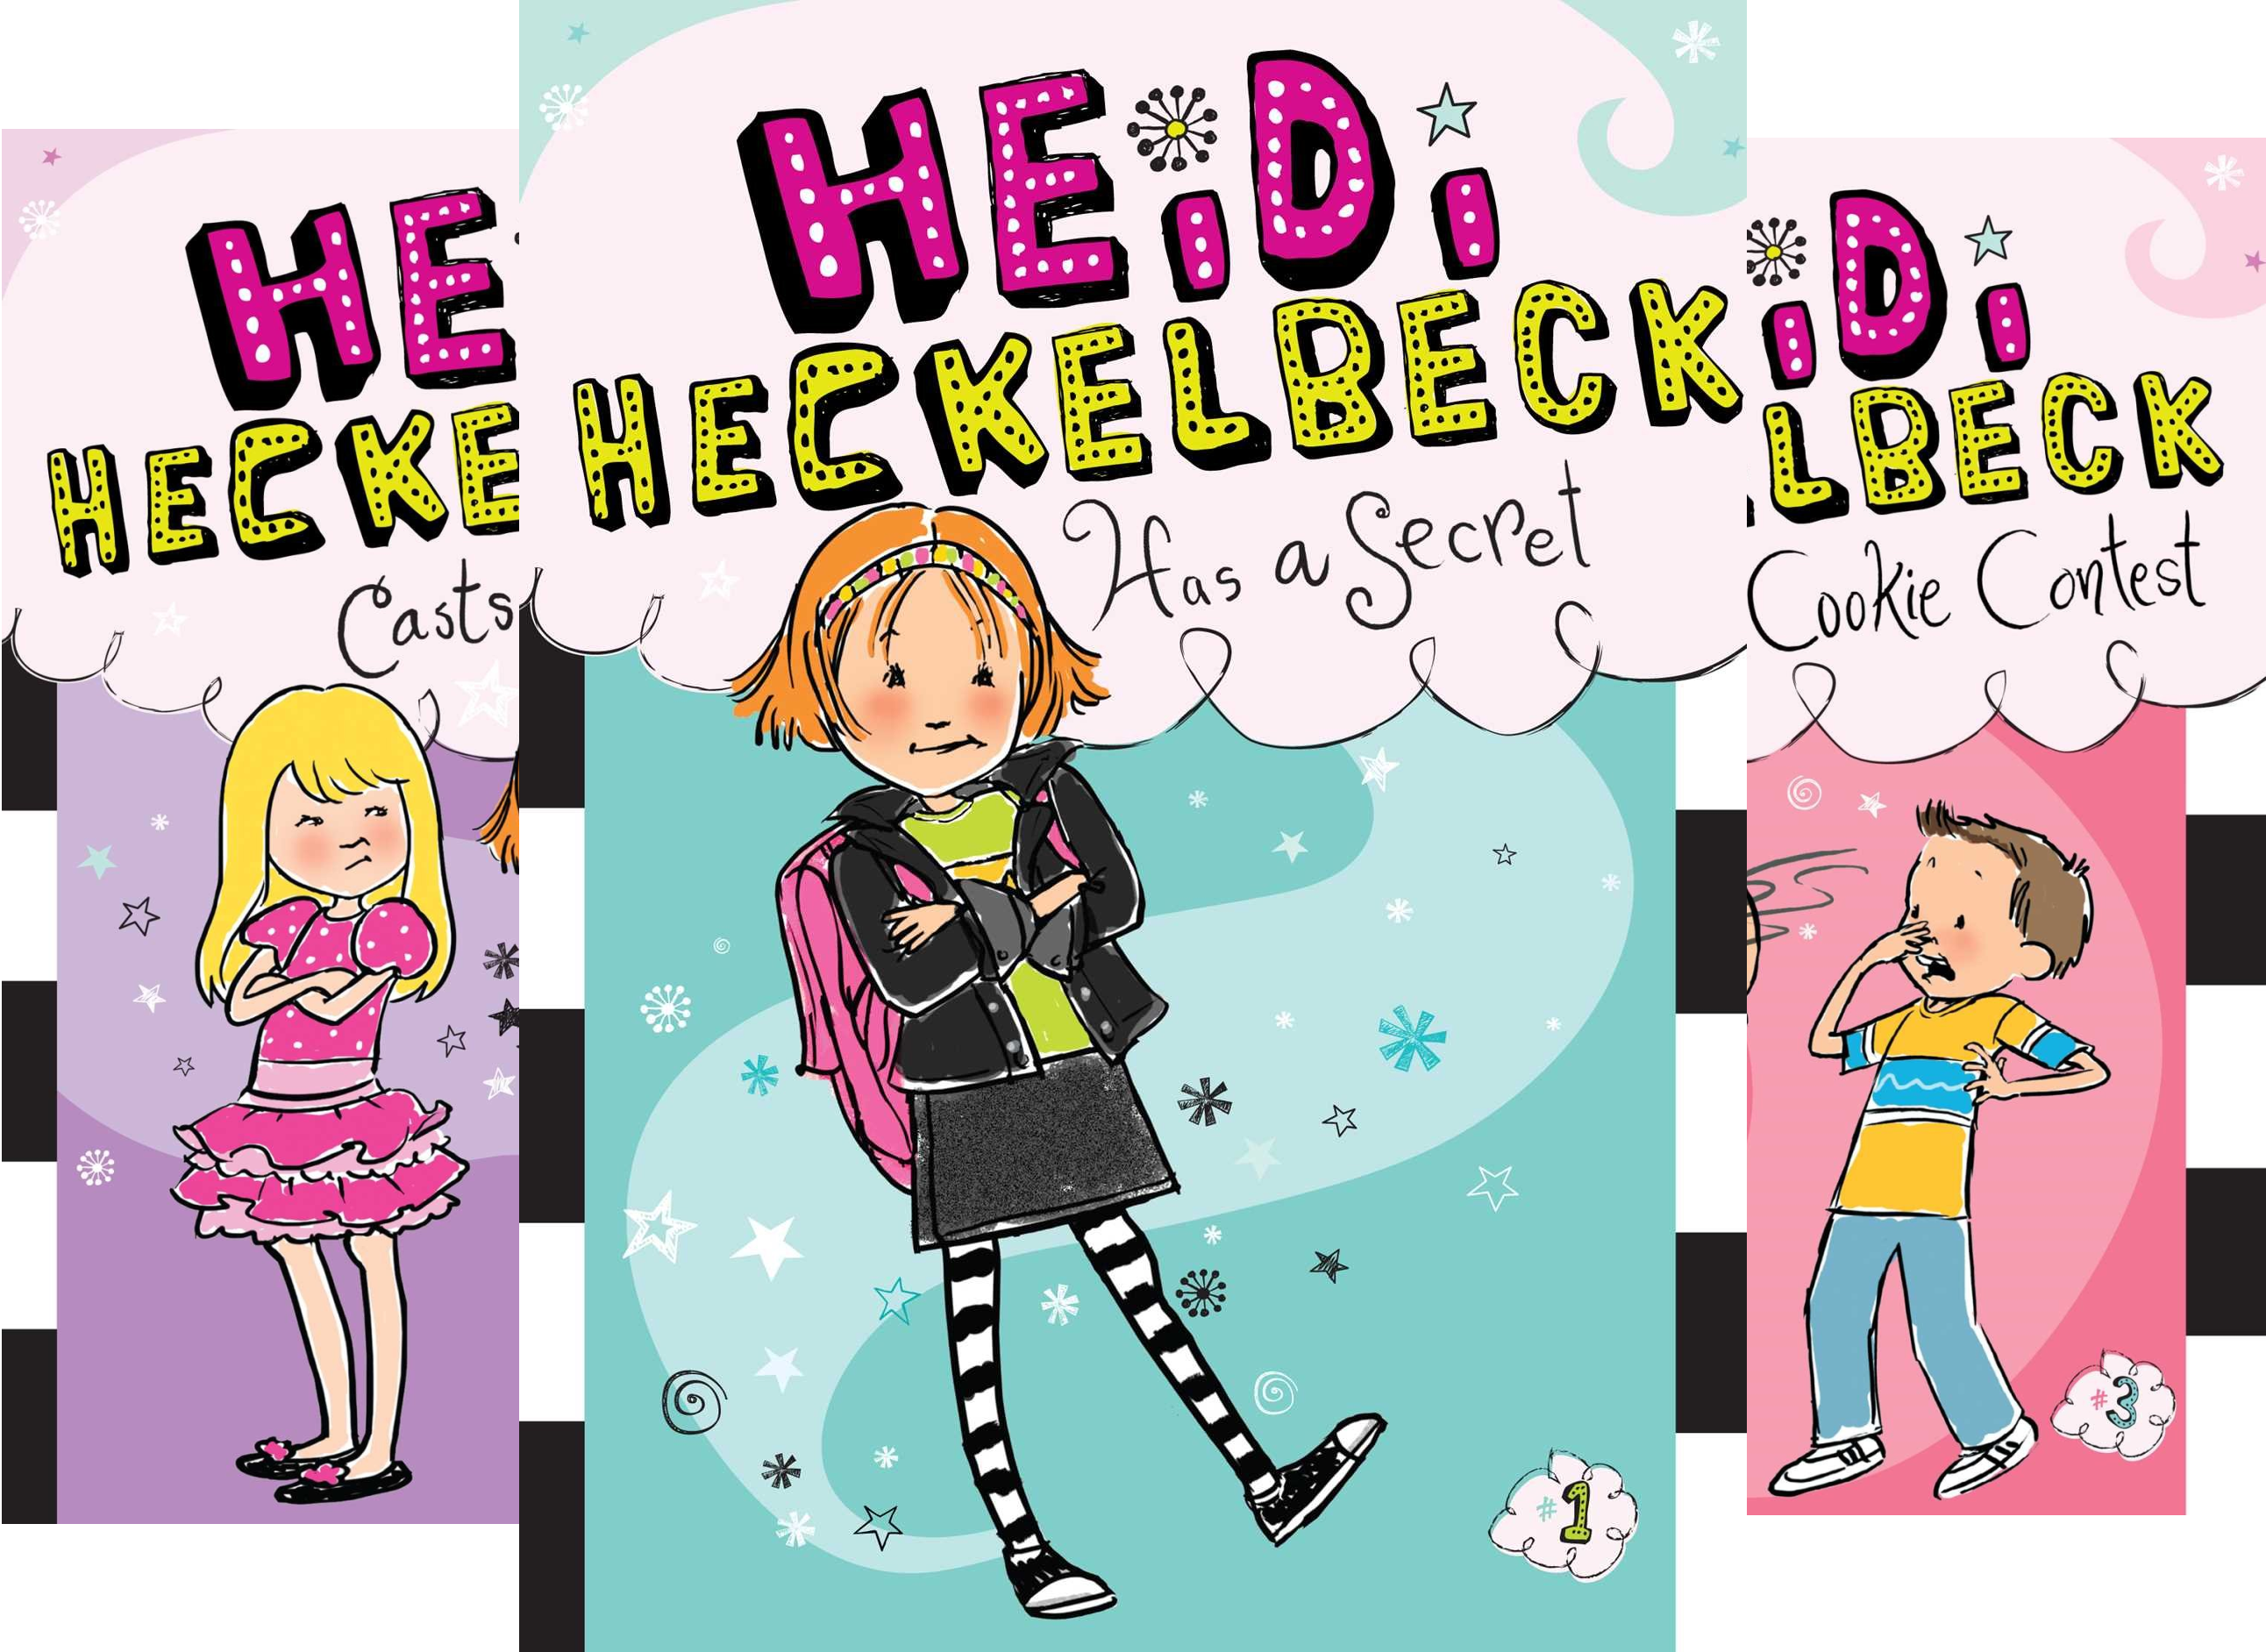 The Heidi Heckelbeck Collection: A Bewitching Four-Book Boxed Set: Heidi Hecklebeck Has a Secret; Heidi Hecklebeck Casts a Spell; Heidi Hecklebeck and the Cookie Contest; Heidi Hecklebeck in Disguise (4 (Halloween 1-8 Box Set)